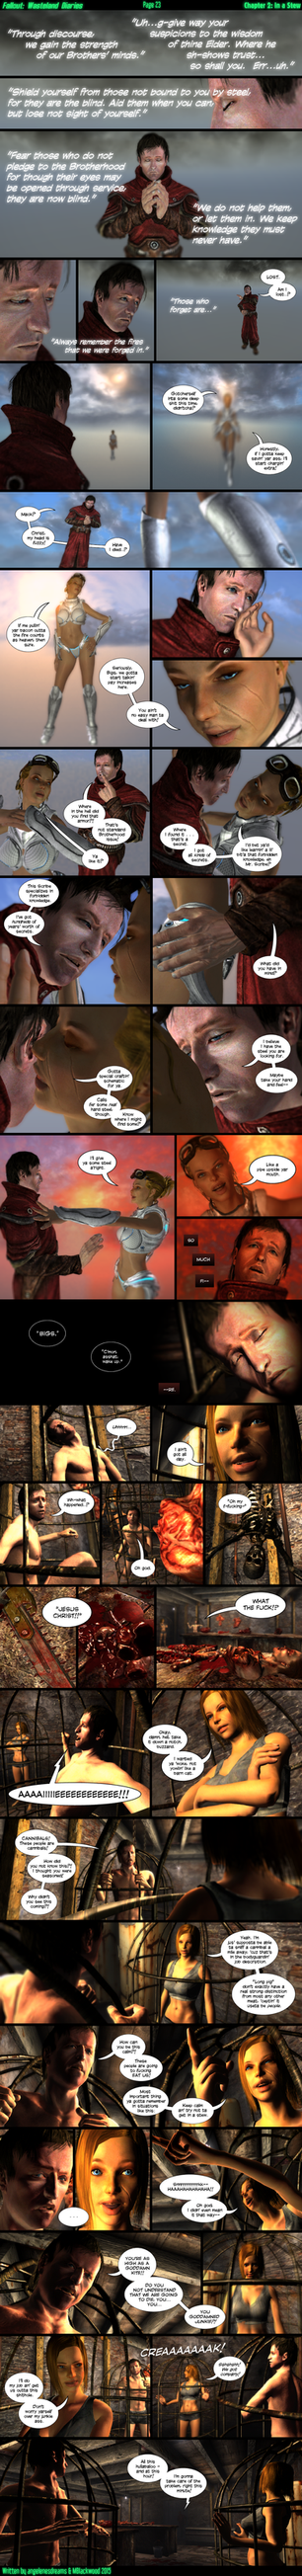 Wasteland Diaries - Page 23 by angelenesdreams